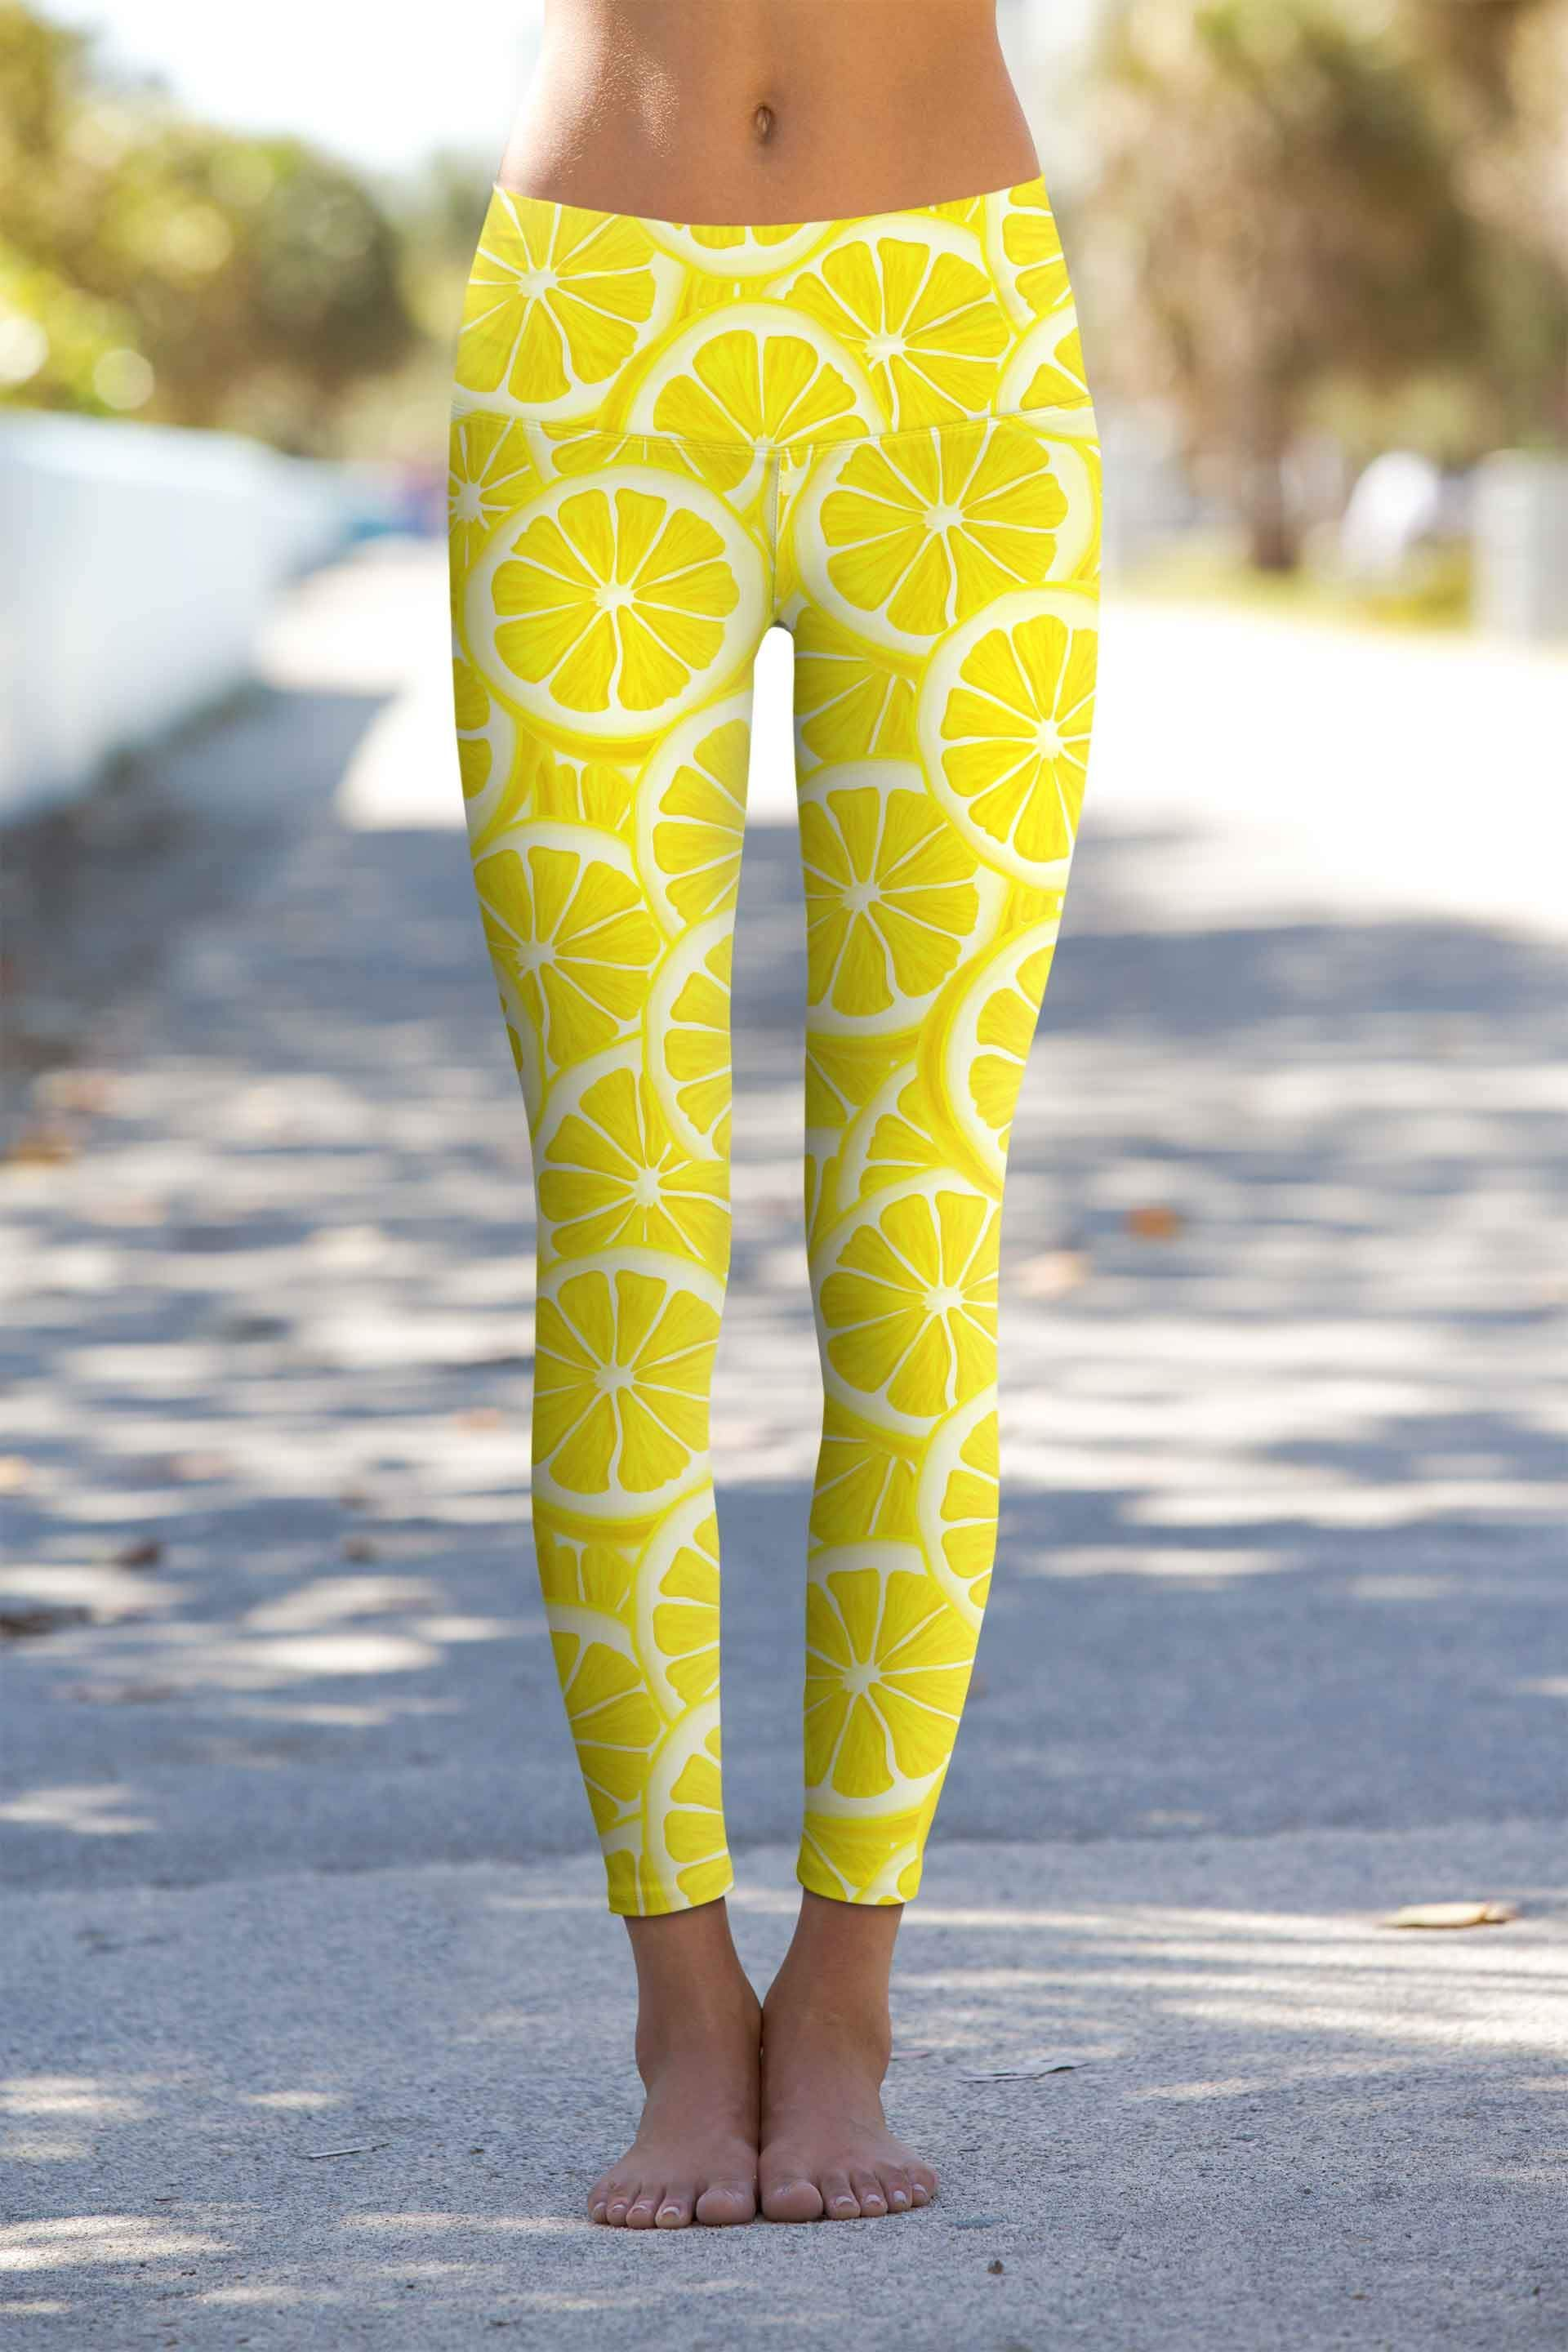 fc0b6968c90 A Piece of Sun Lucy Yellow Lemon Print Leggings Yoga Pants - Women ...